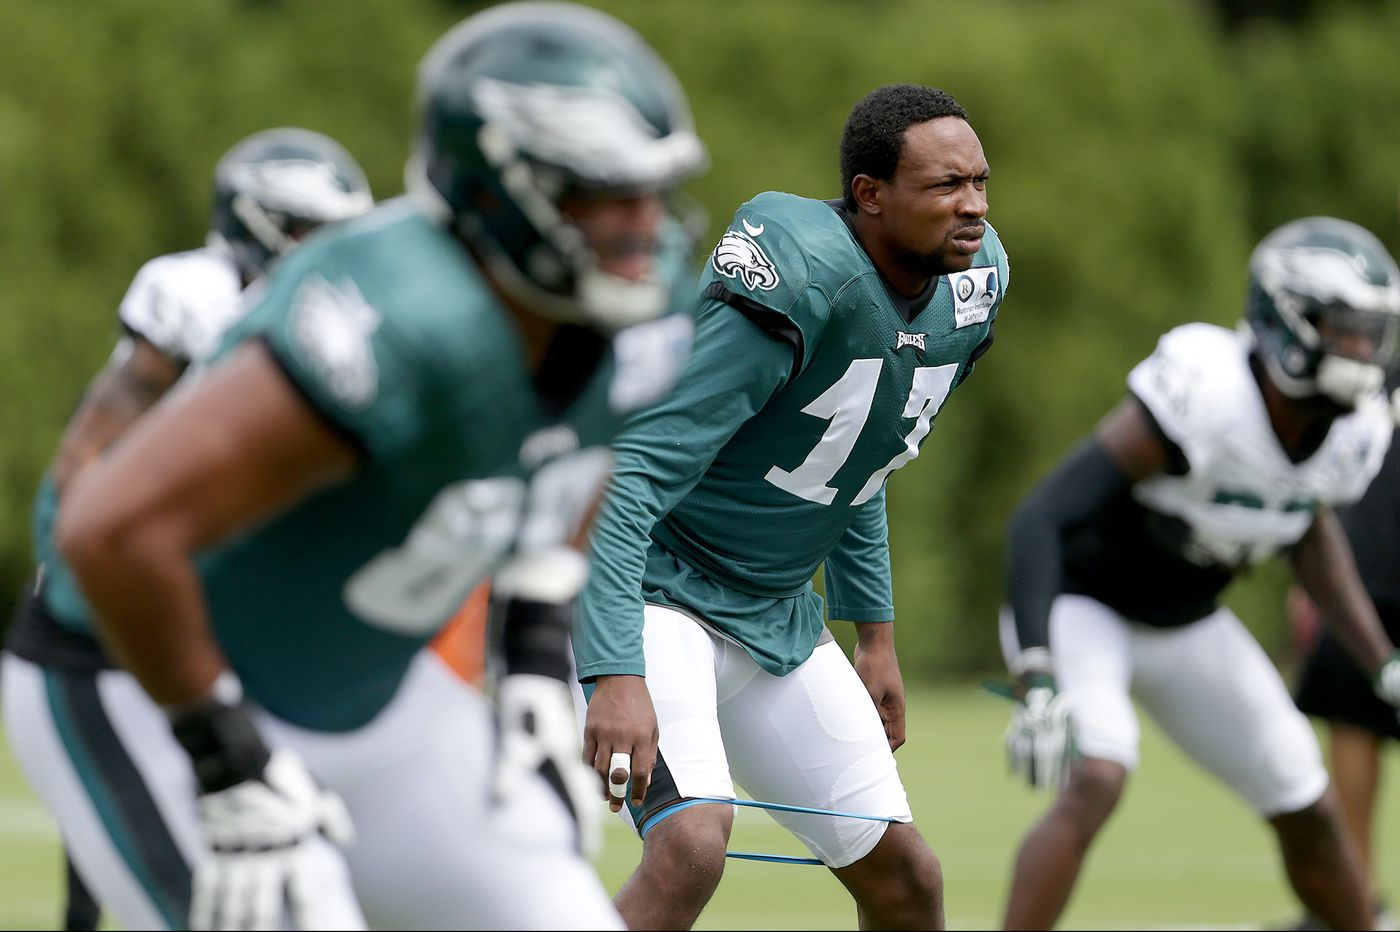 Alshon Jeffery won't speculate on a return date, but the Eagles' offense needs him